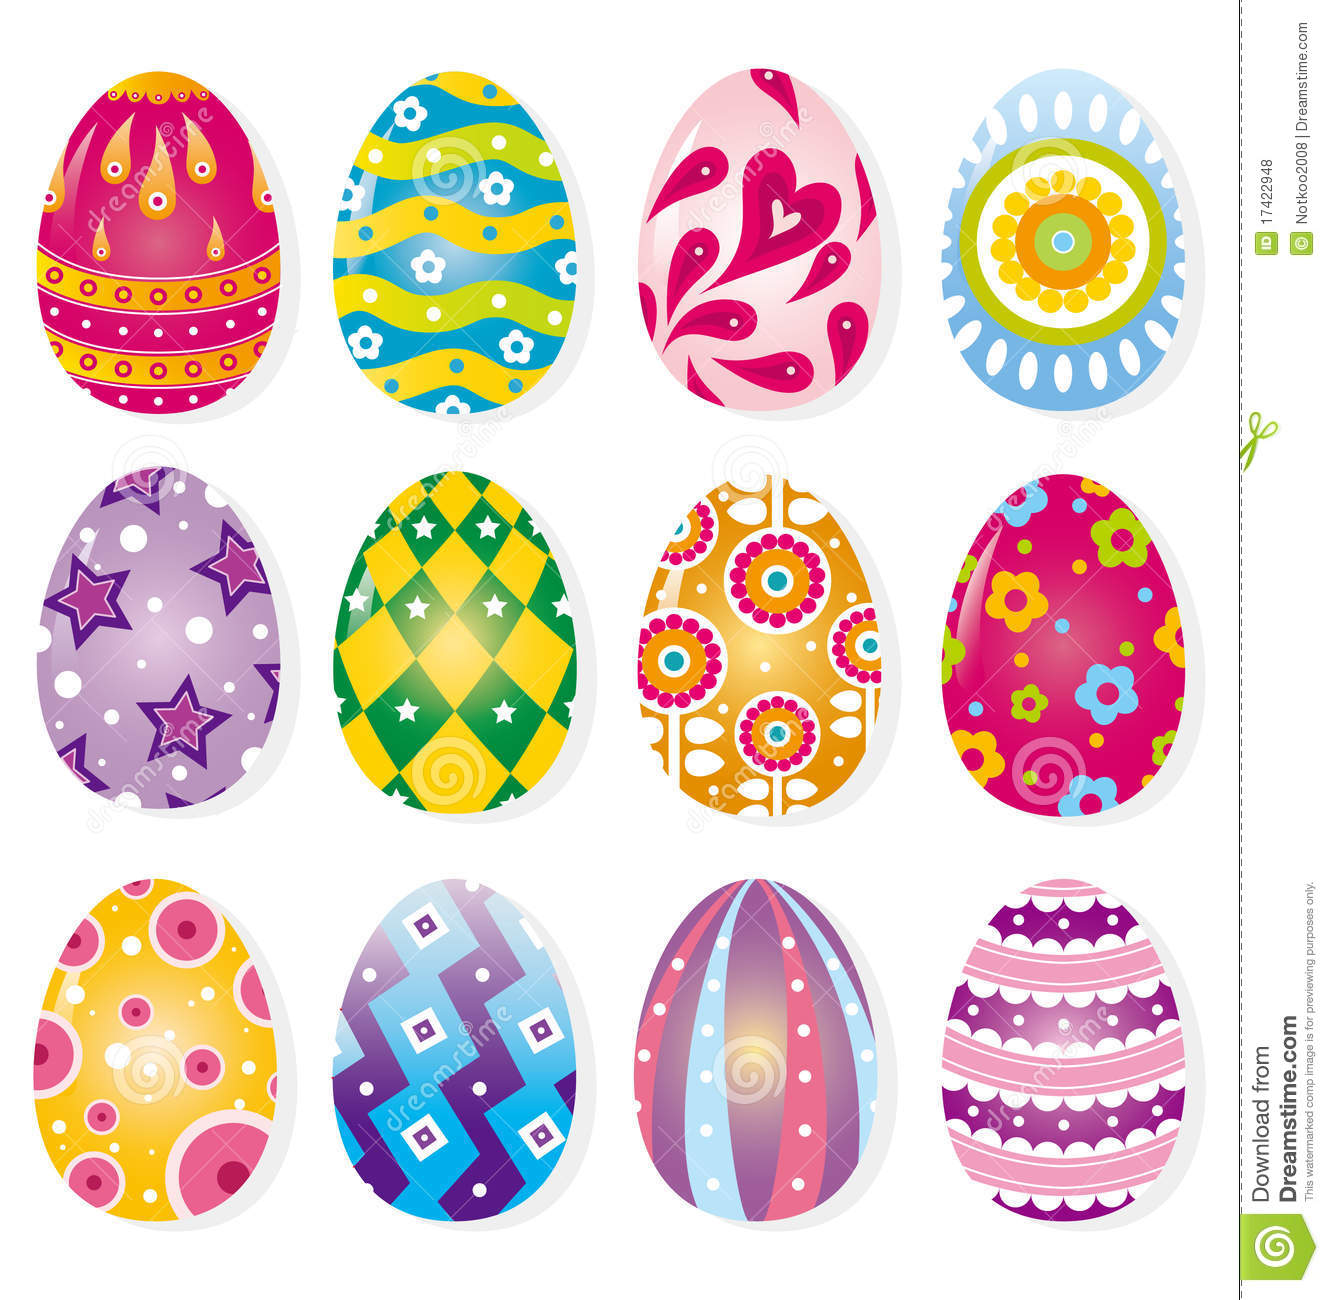 Cartoon Easter Egg Royalty Free Stock Photos Image 17422948